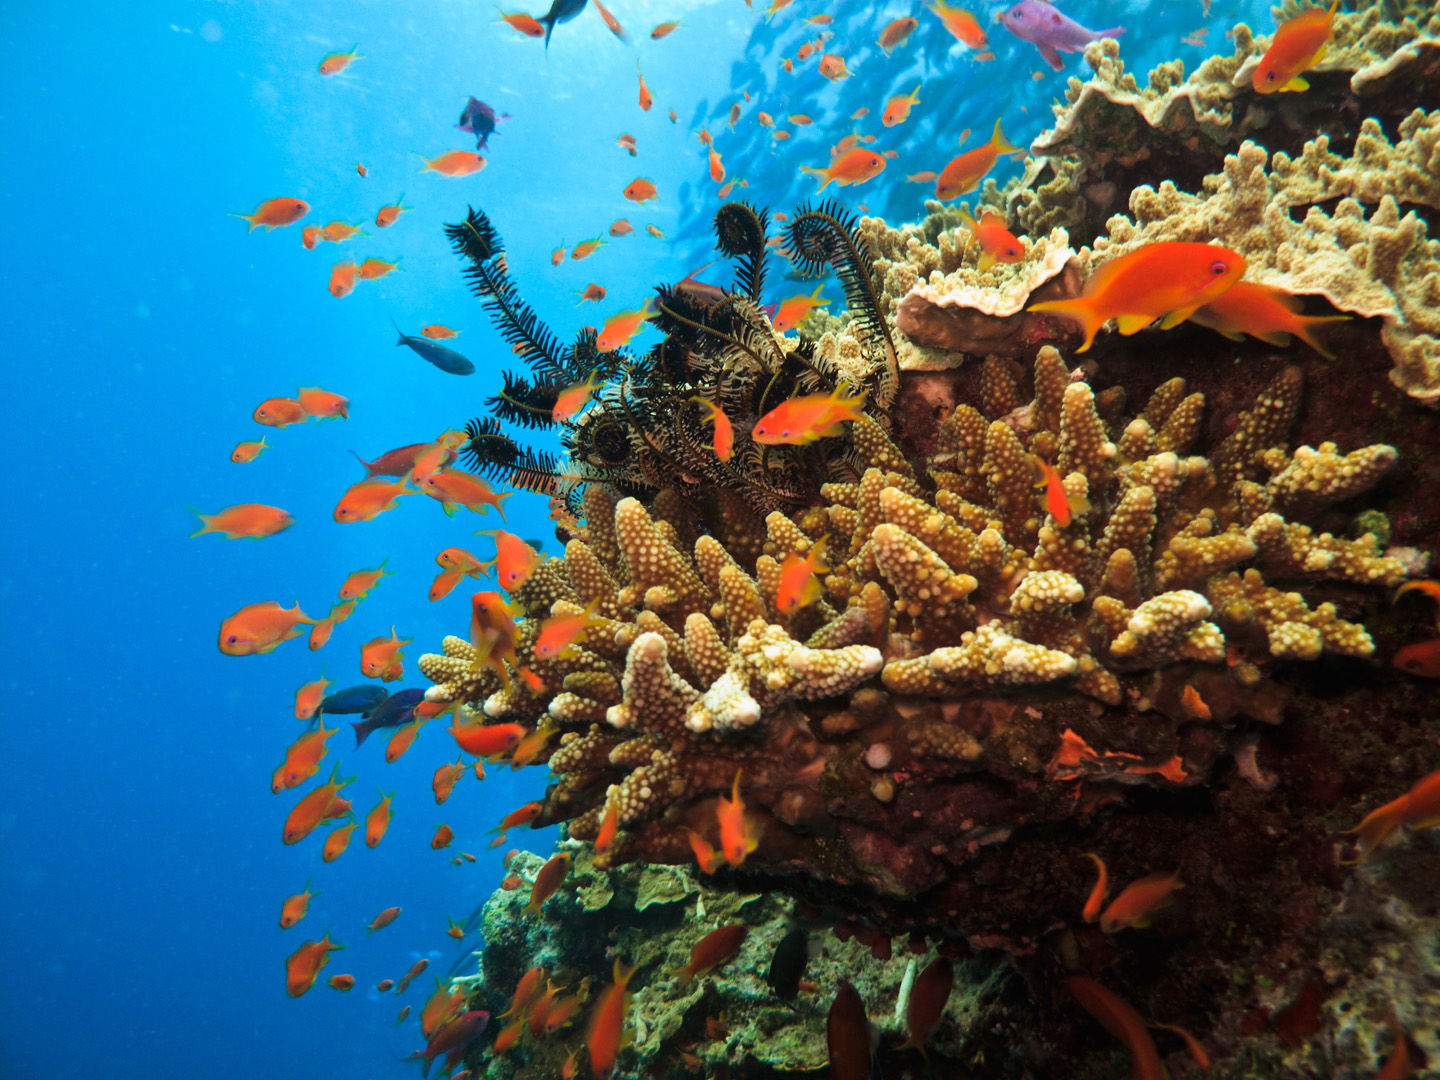 Australia's Great Barrier Reef is one of the seven wonders of the natural world, and a destination that has it all from the tiniest and most exotic marine creature to the largest fish in the sea